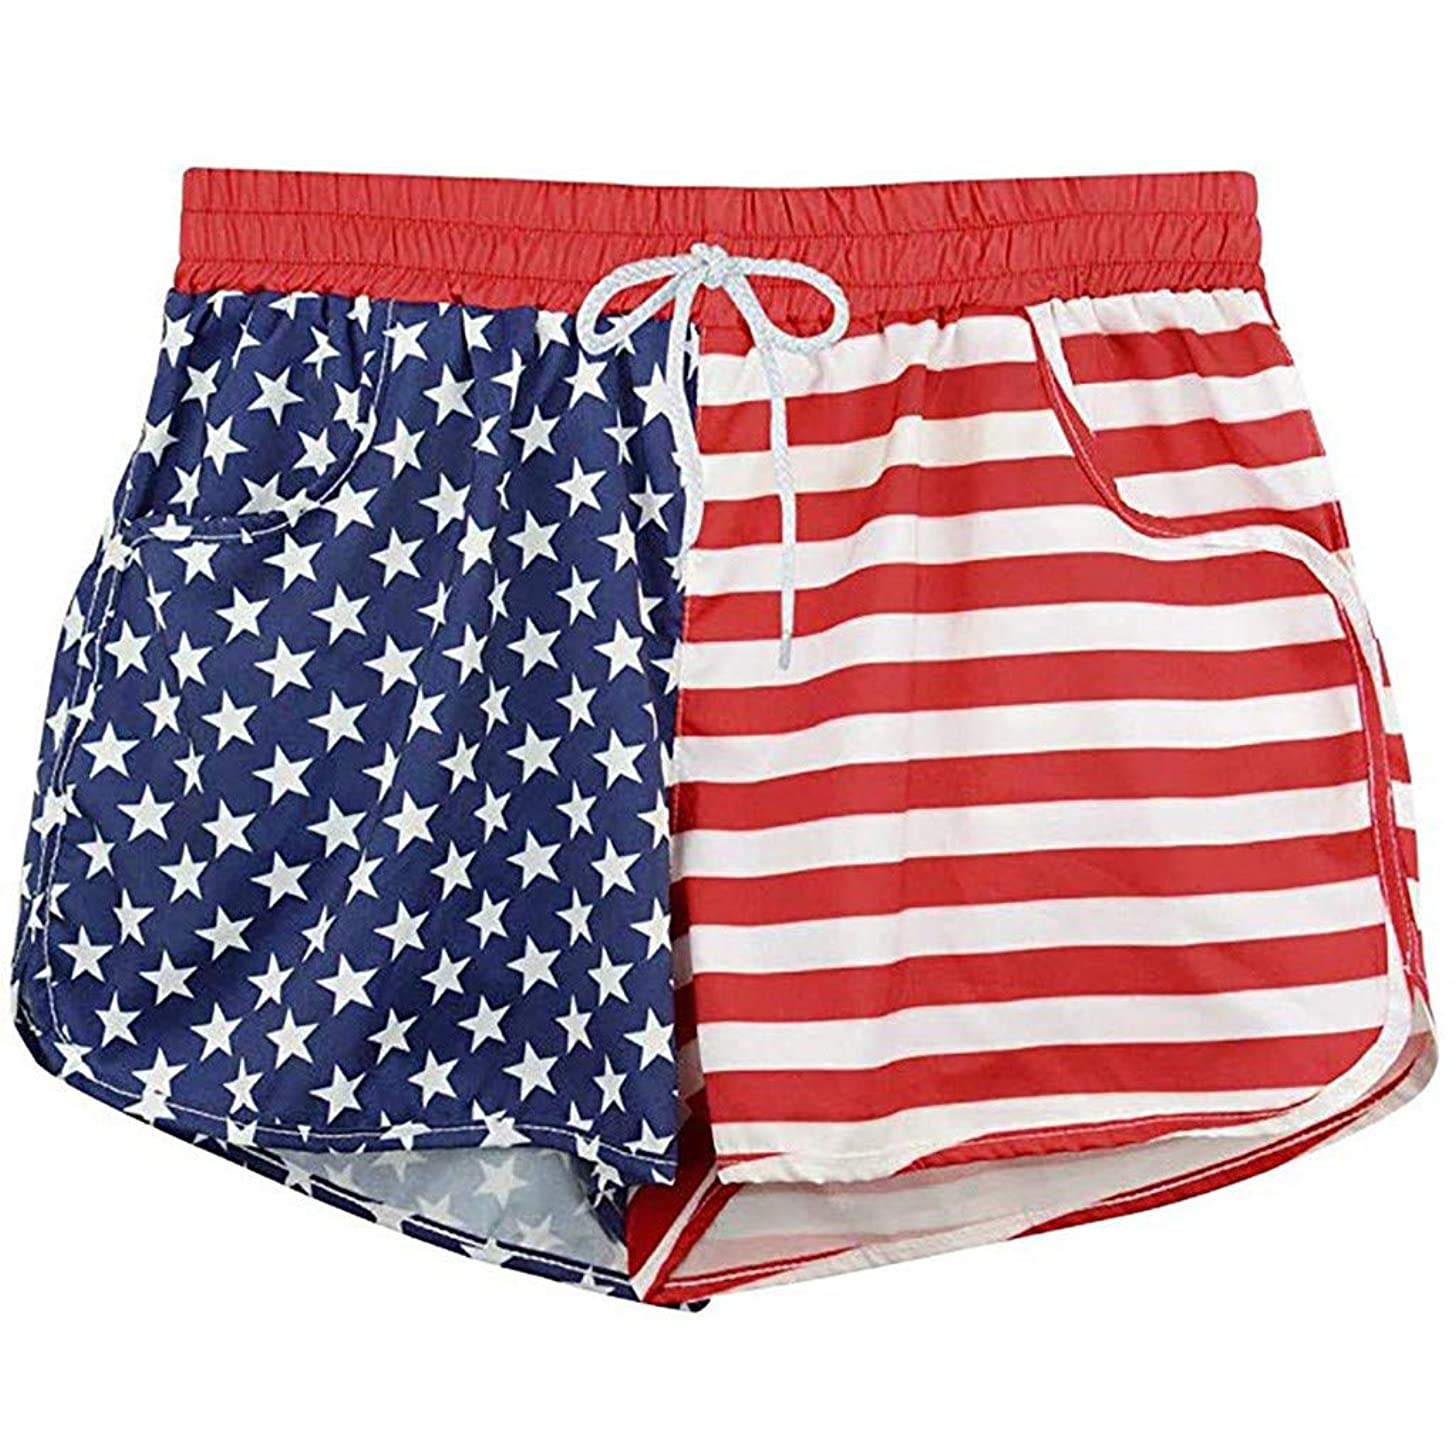 ANJUNIE Women's US Flag Beachwear Shorts with Lining Summer Casual Pant Bandwidth Pine Independence Day Comfy Trunks